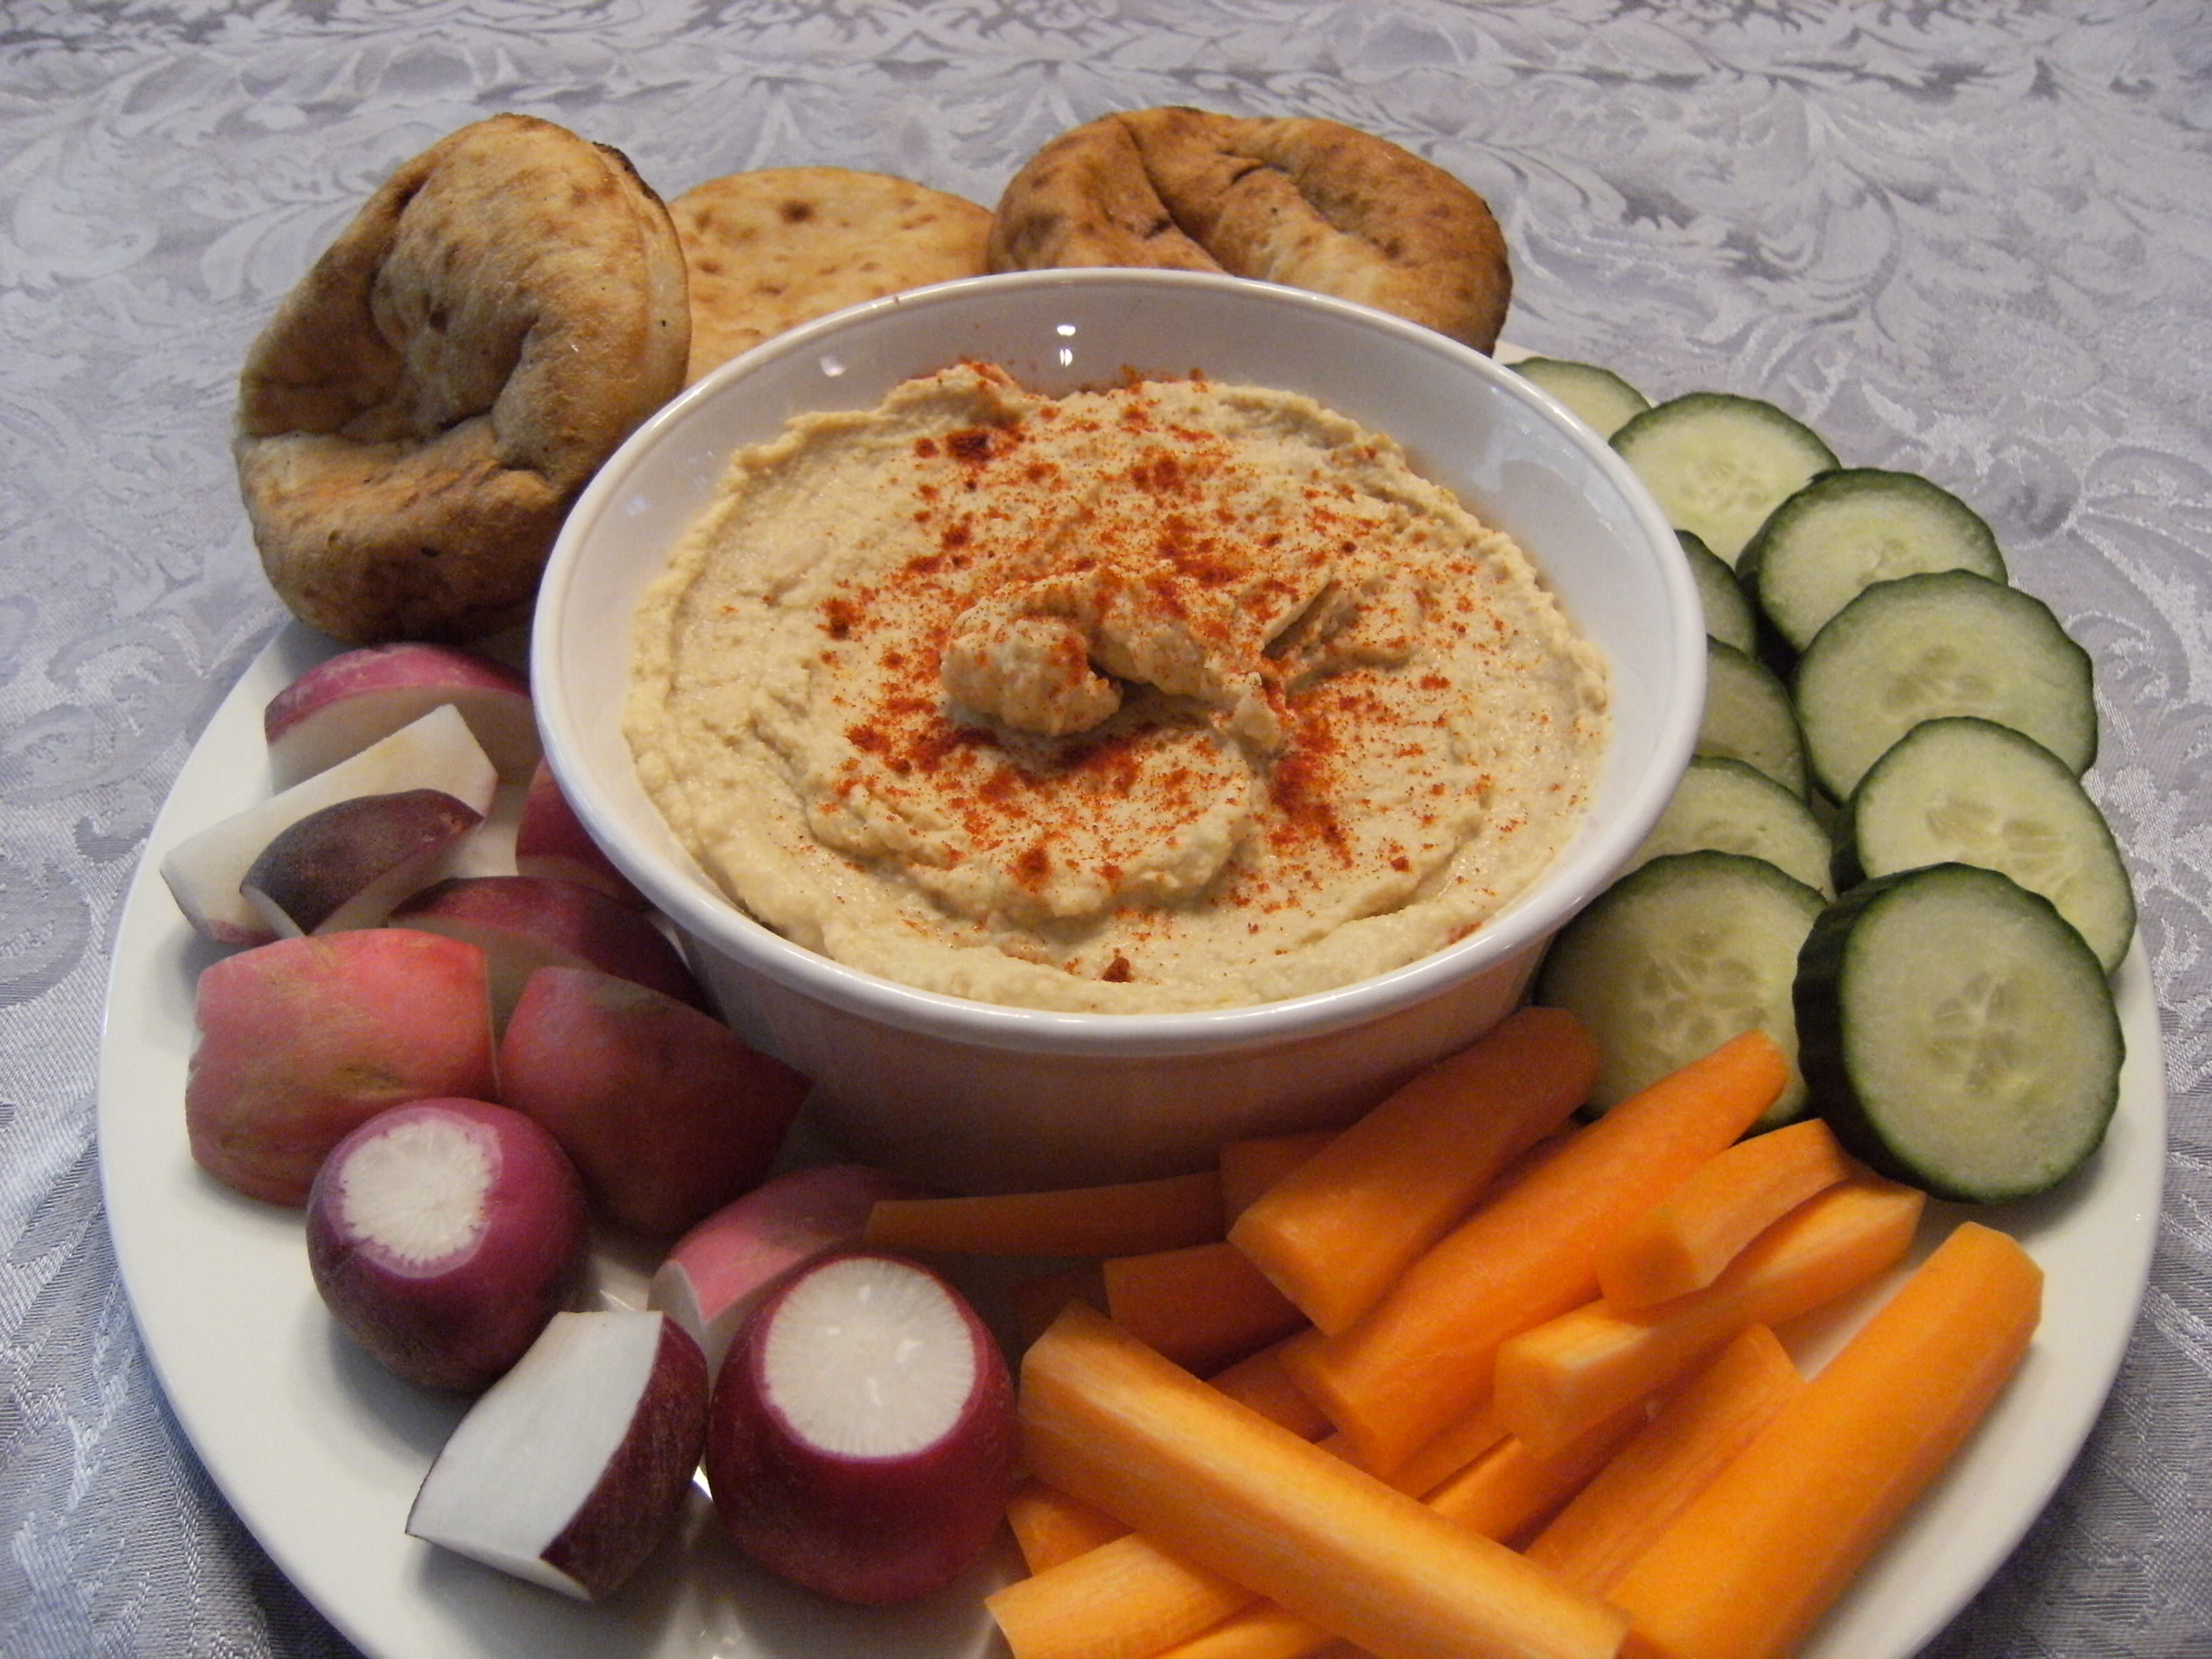 Mediterranean hummus is a spread made from garbanzo beans (chickpeas) and tahini. It's a healthy snack dip that's delicious warm or cold! - Get the recipe on ComfortablyDomestic.com